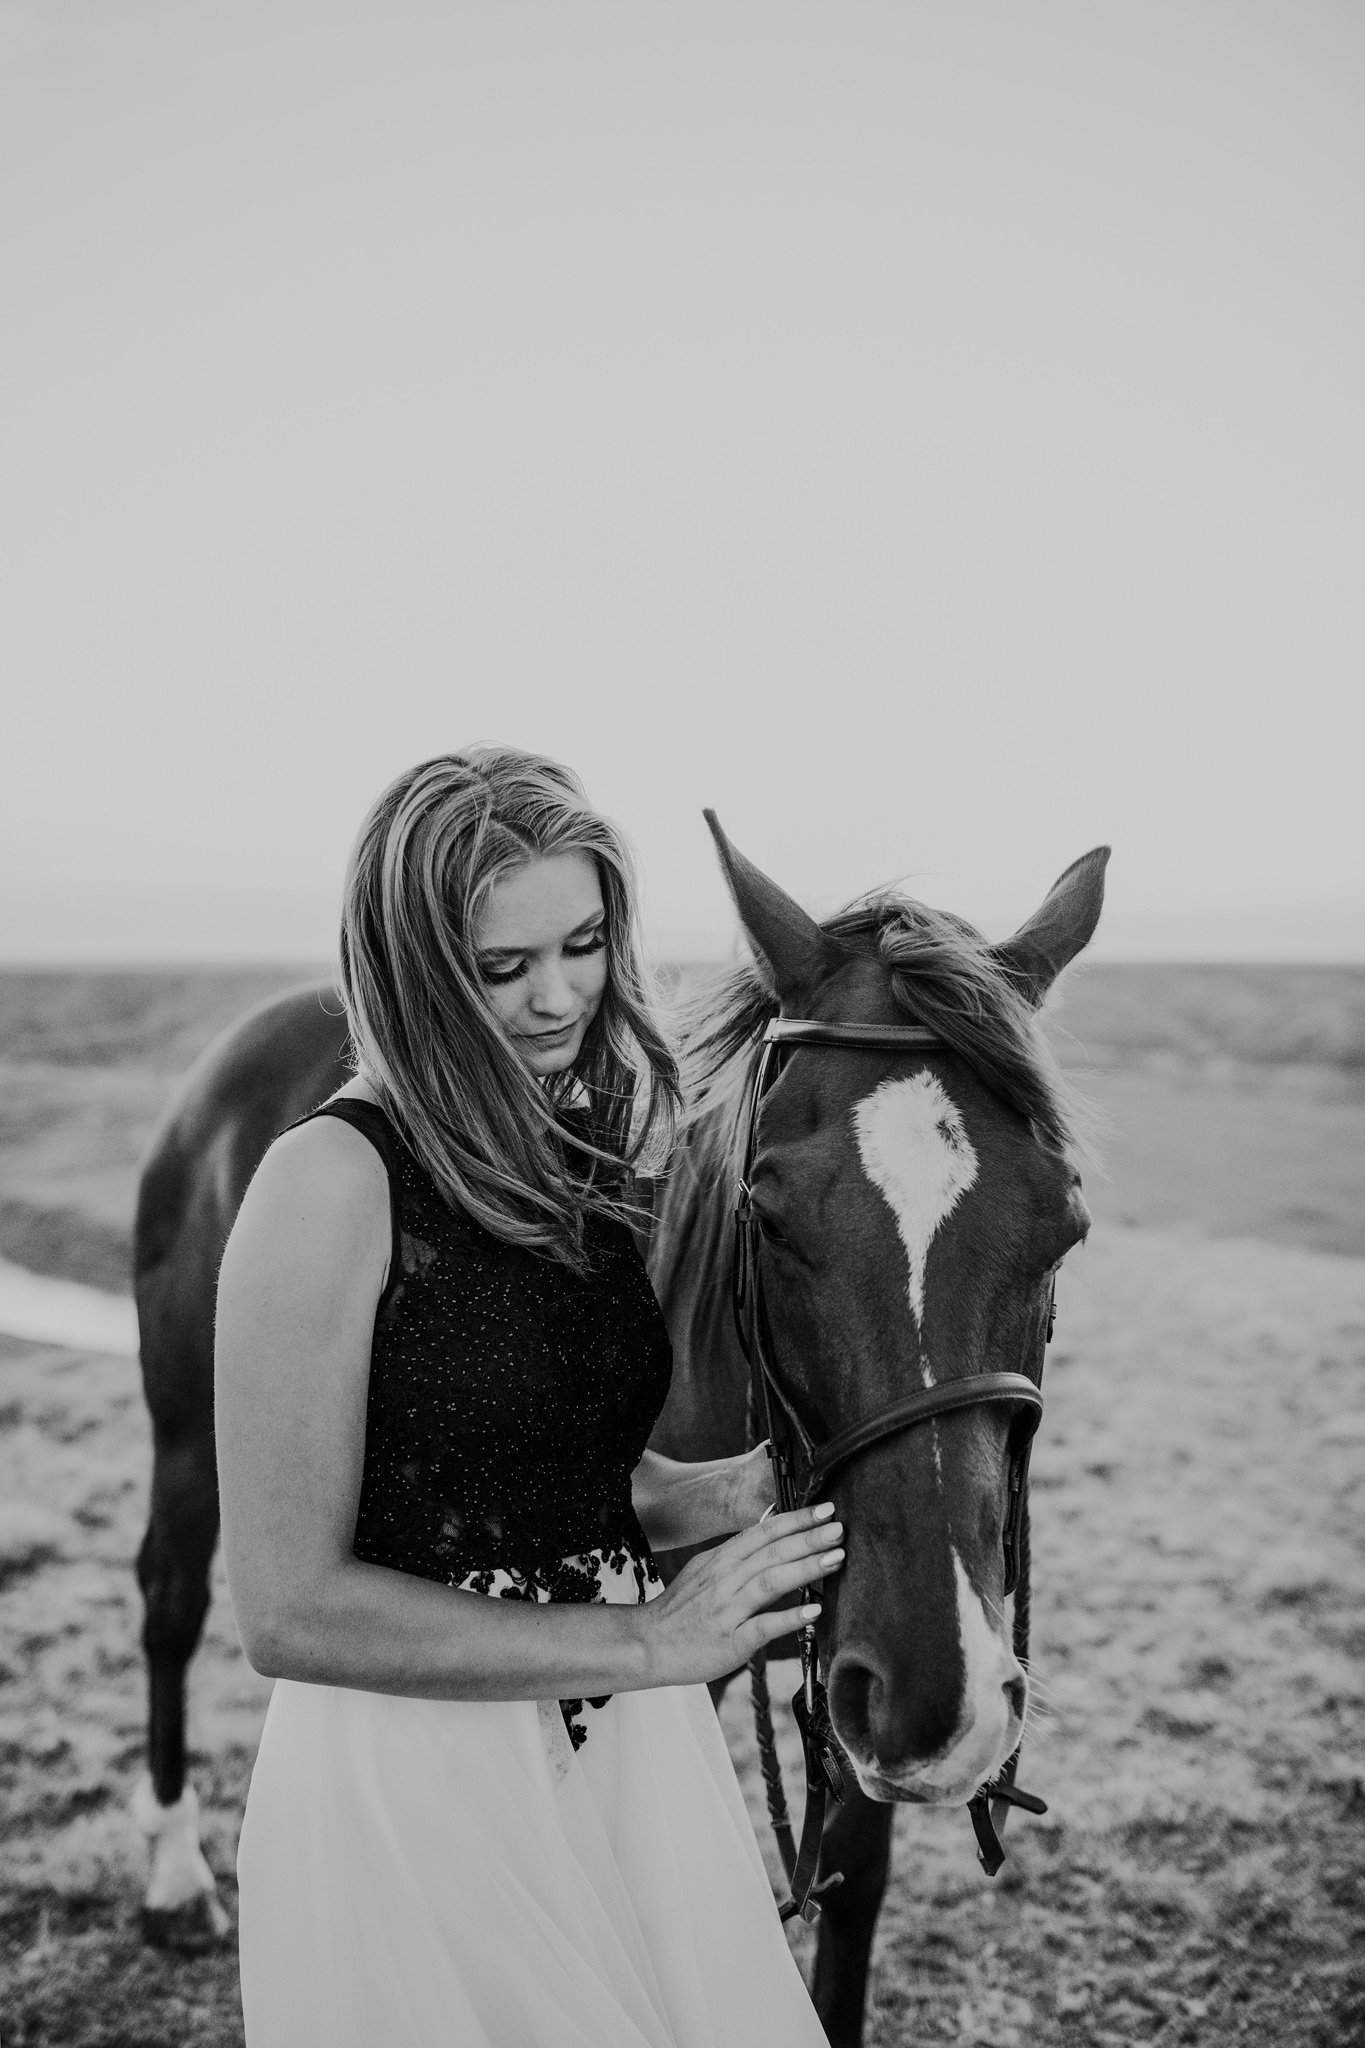 grad girl petting horse hair blowing in wind black and white